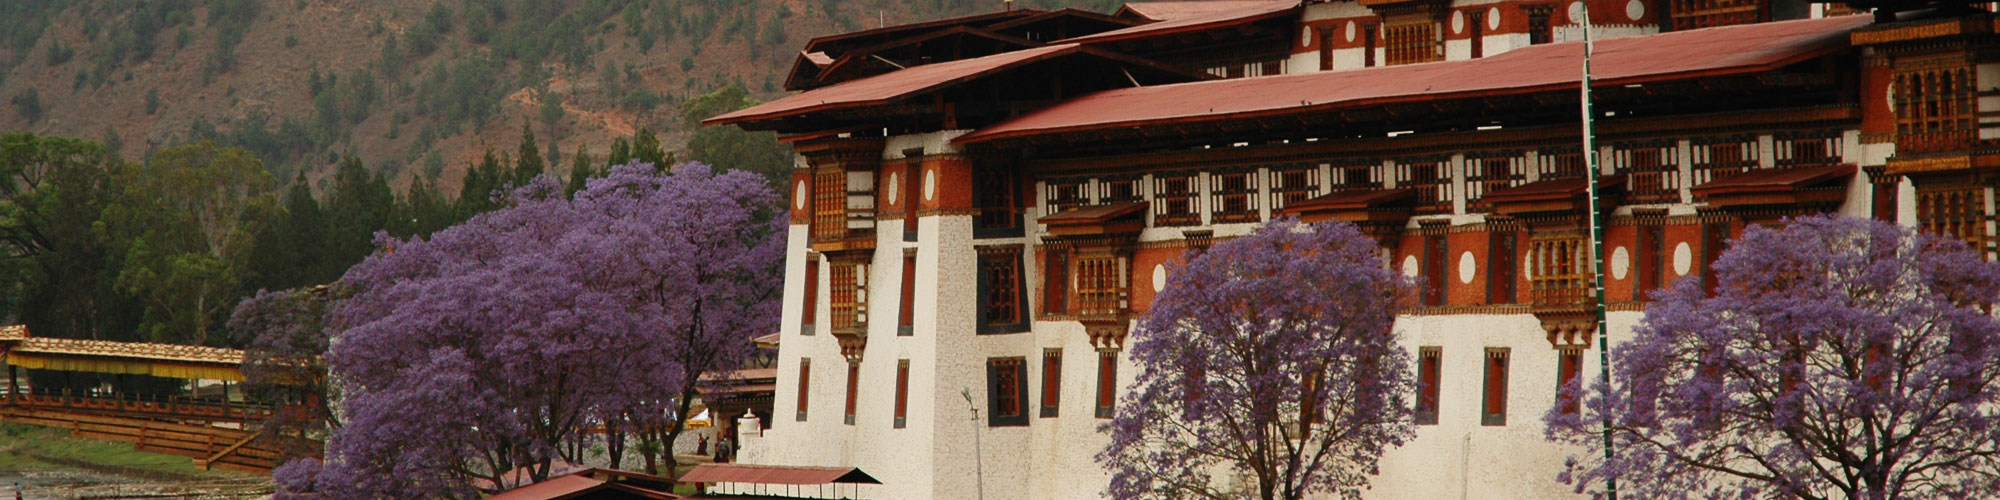 Destintion Bhutan  Realizing